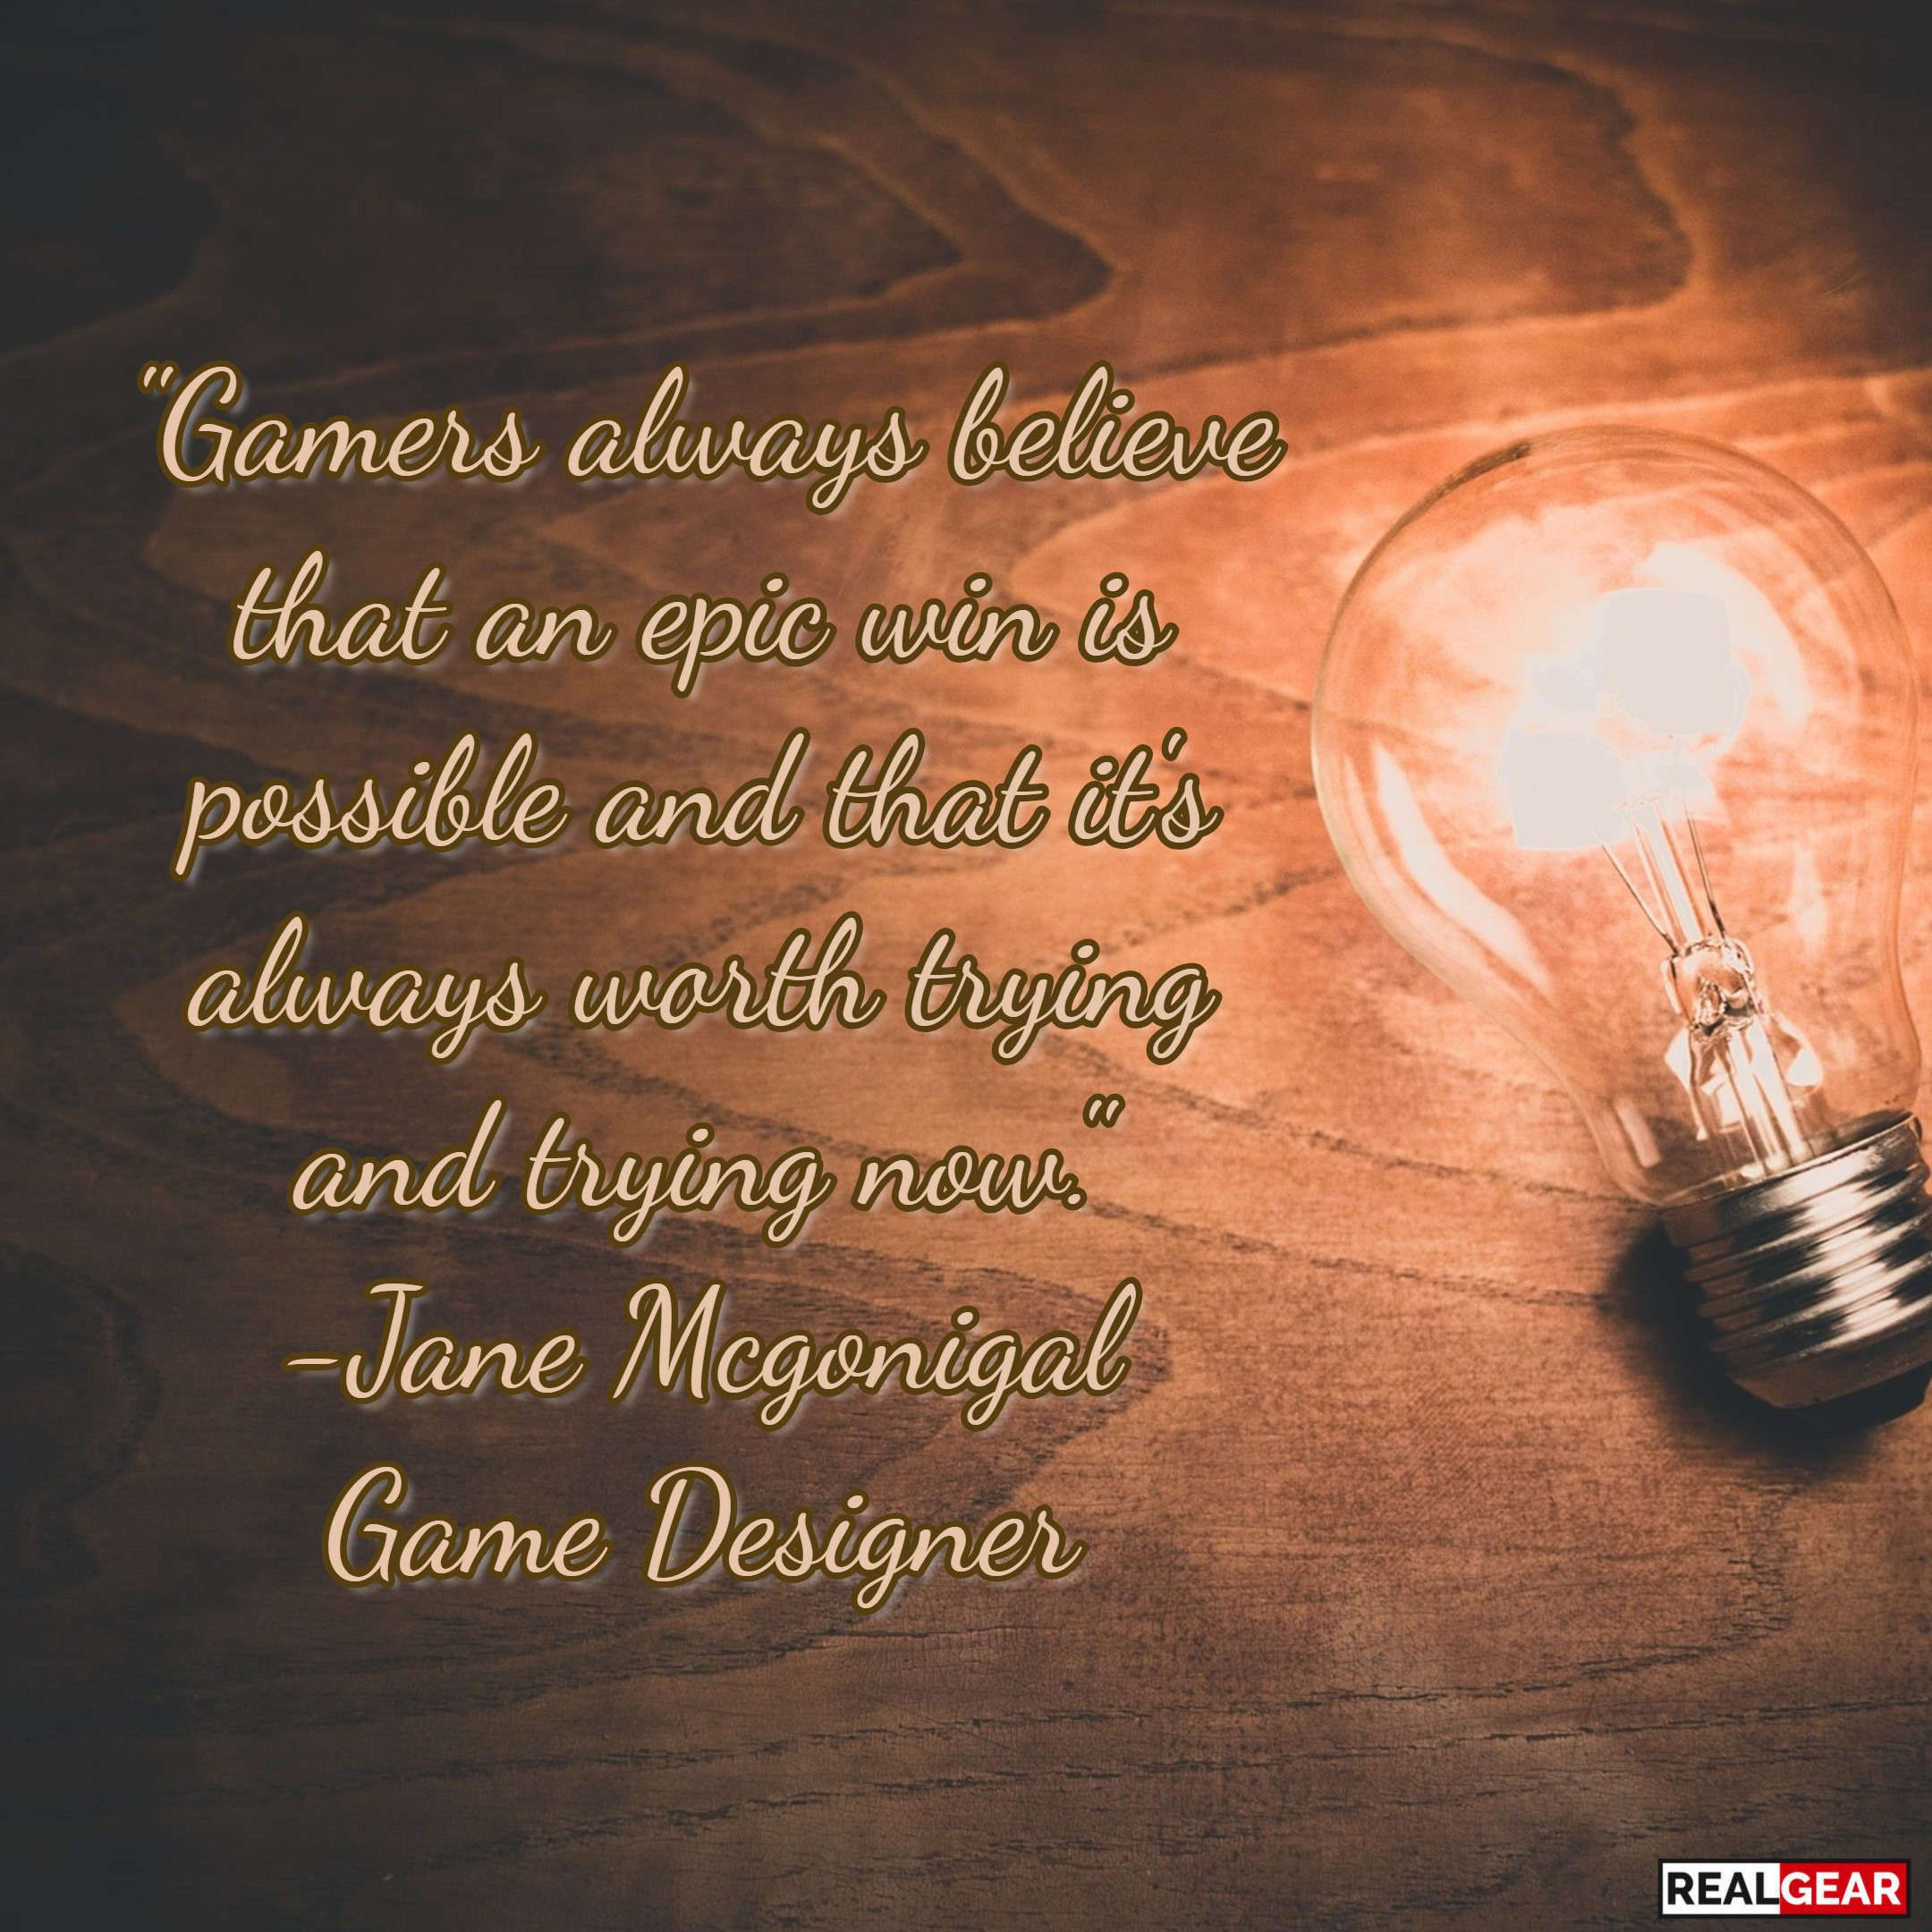 Gamer Gaming Gamingquotes Inspiration For More Gaming Content Visit Our Website Http Amp Gs Oihr Game Design Quotes Always Believe